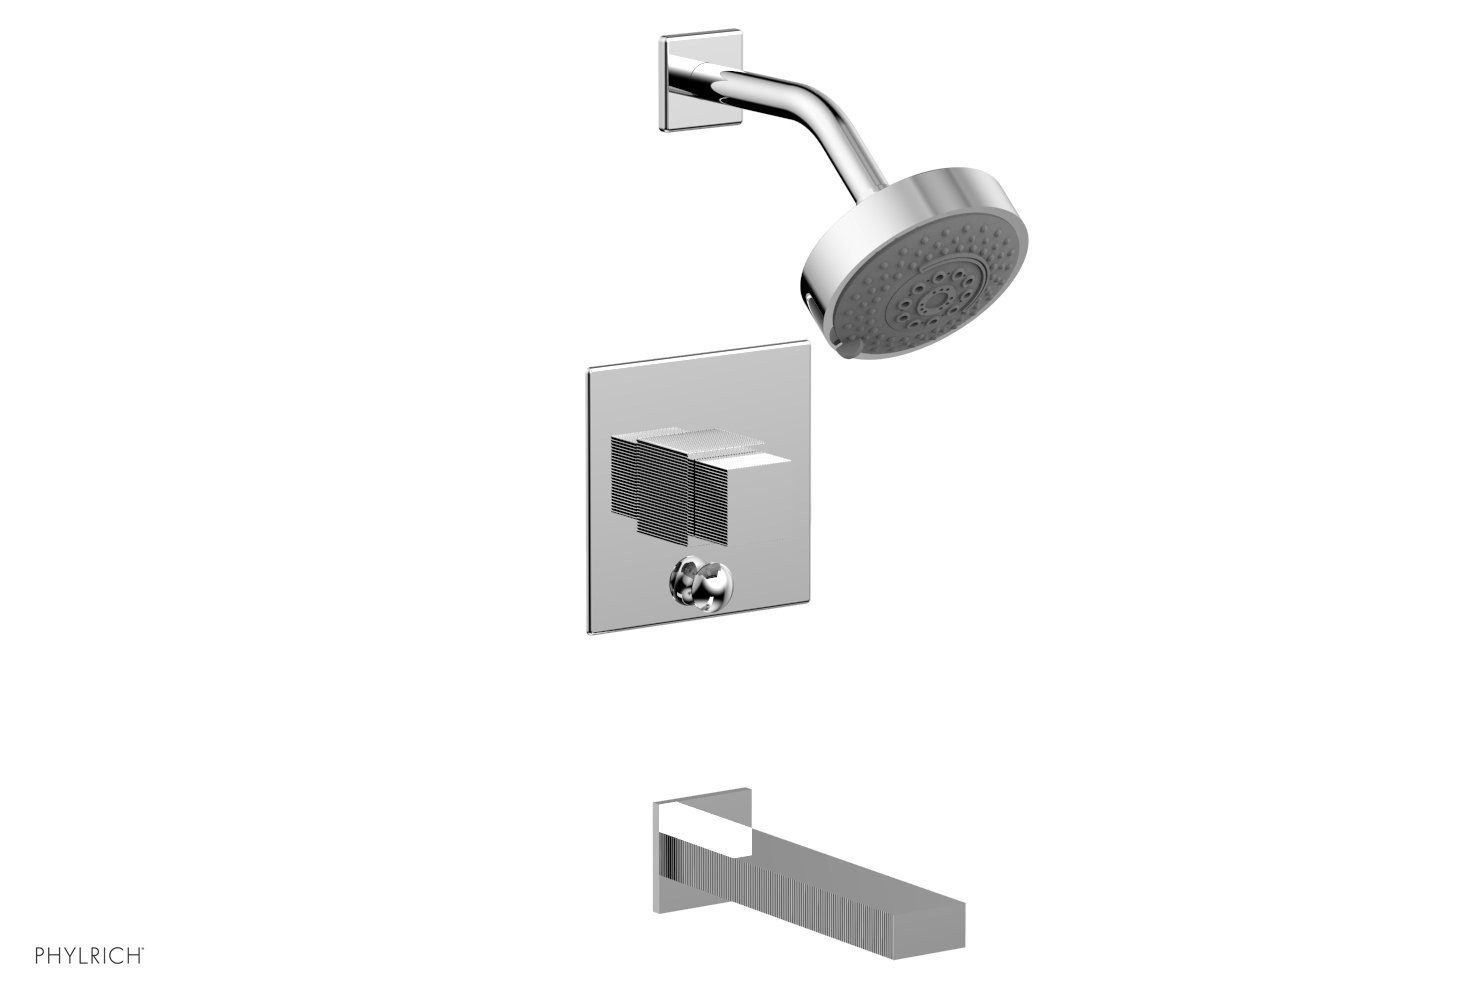 PHYLRICH 291-29 STRIA WALL MOUNT PRESSURE BALANCE TUB AND SHOWER SET WITH CUBE HANDLE